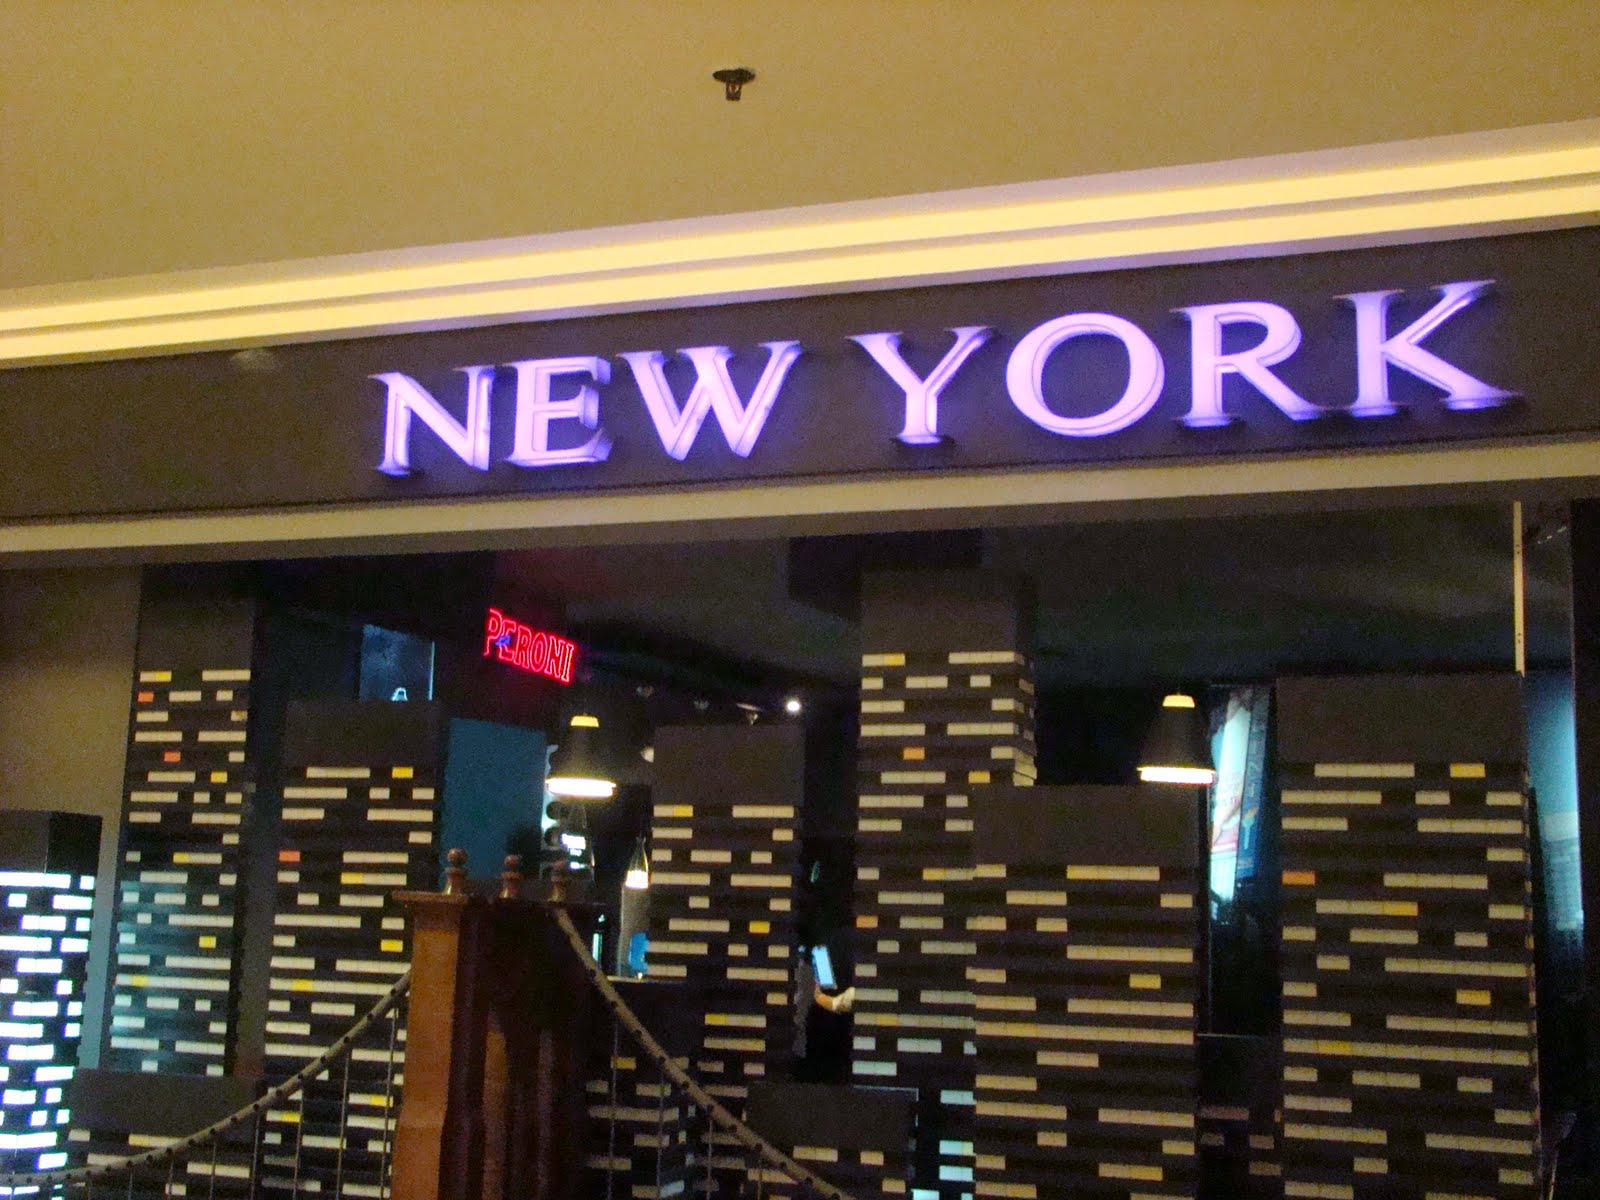 Restaurants Bucharest Romania - Reviews: Fall in New York. New York ...